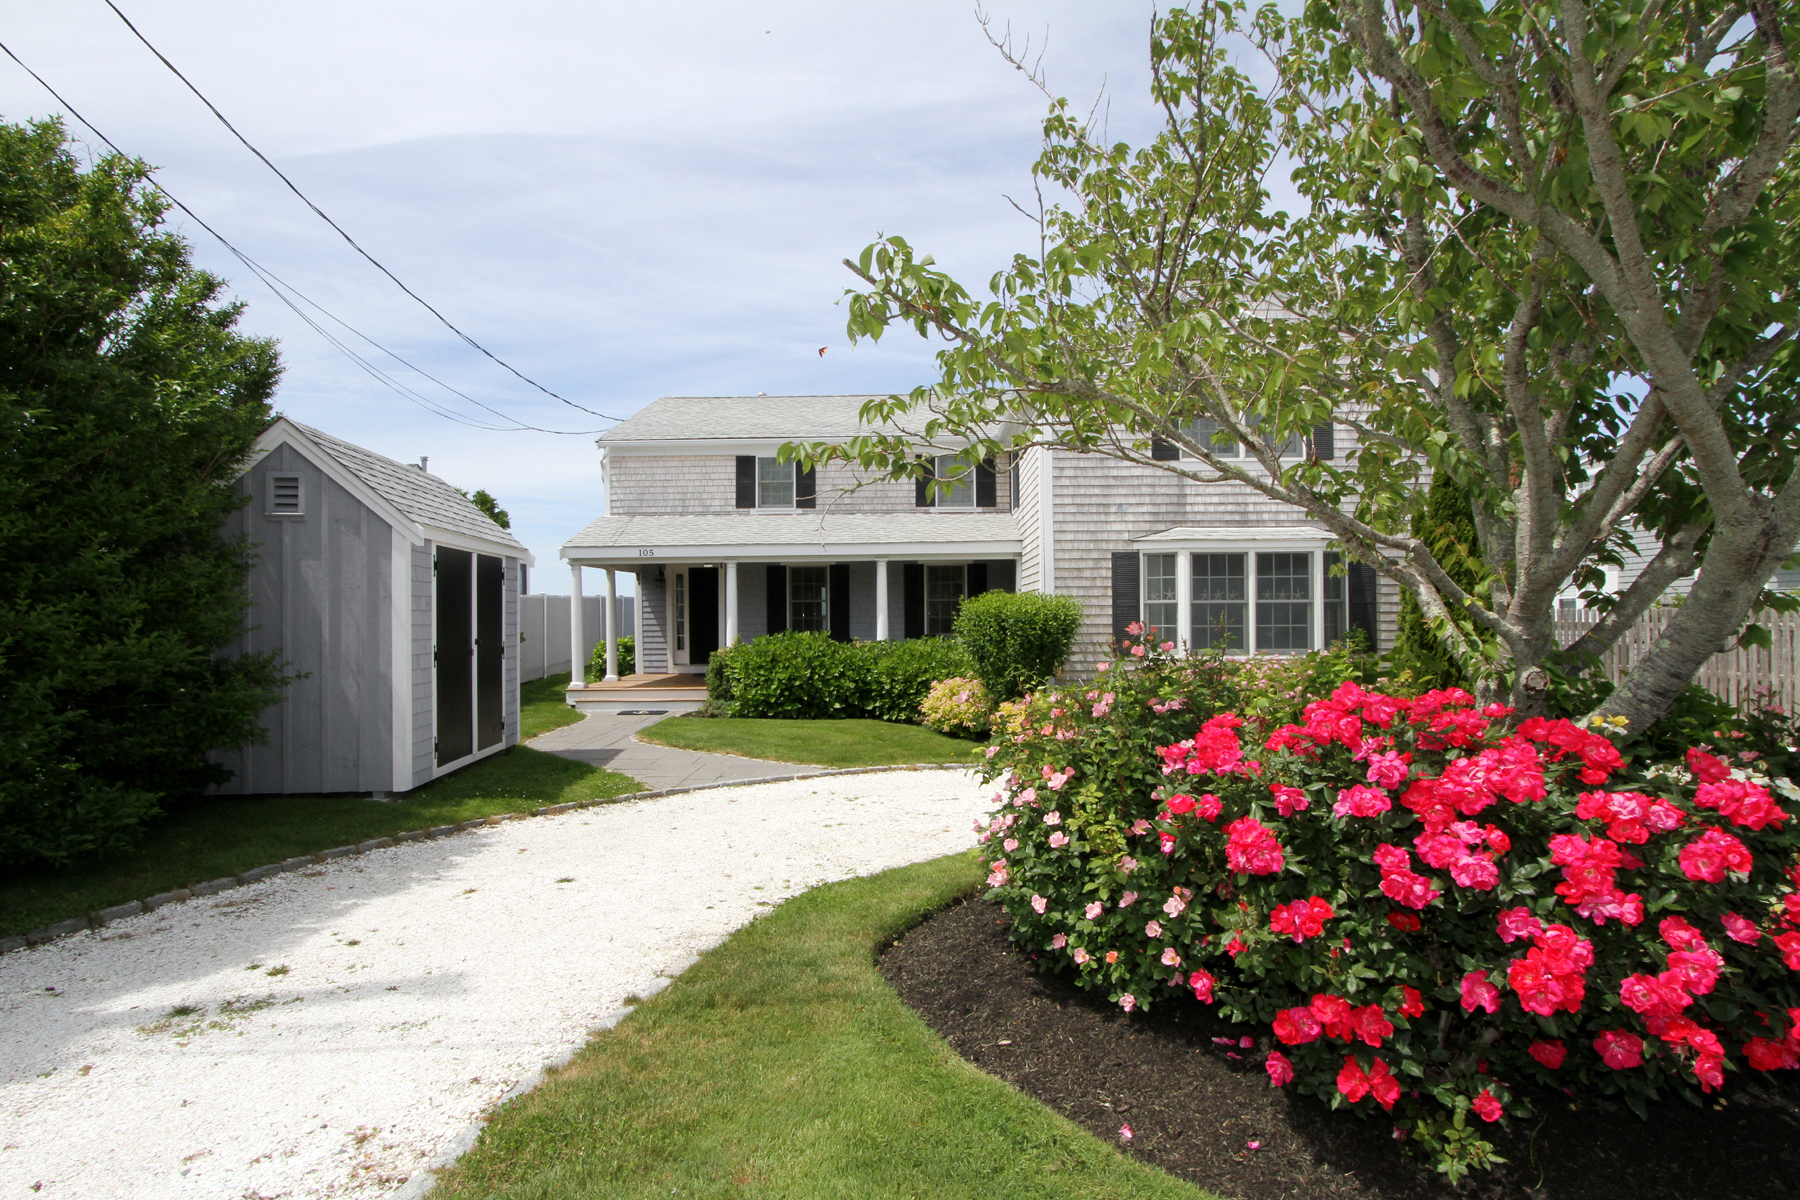 Single Family Home for Sale at BARNSTABLE WATERFRONT 105 Sunset Lane Barnstable, Massachusetts 02630 United States